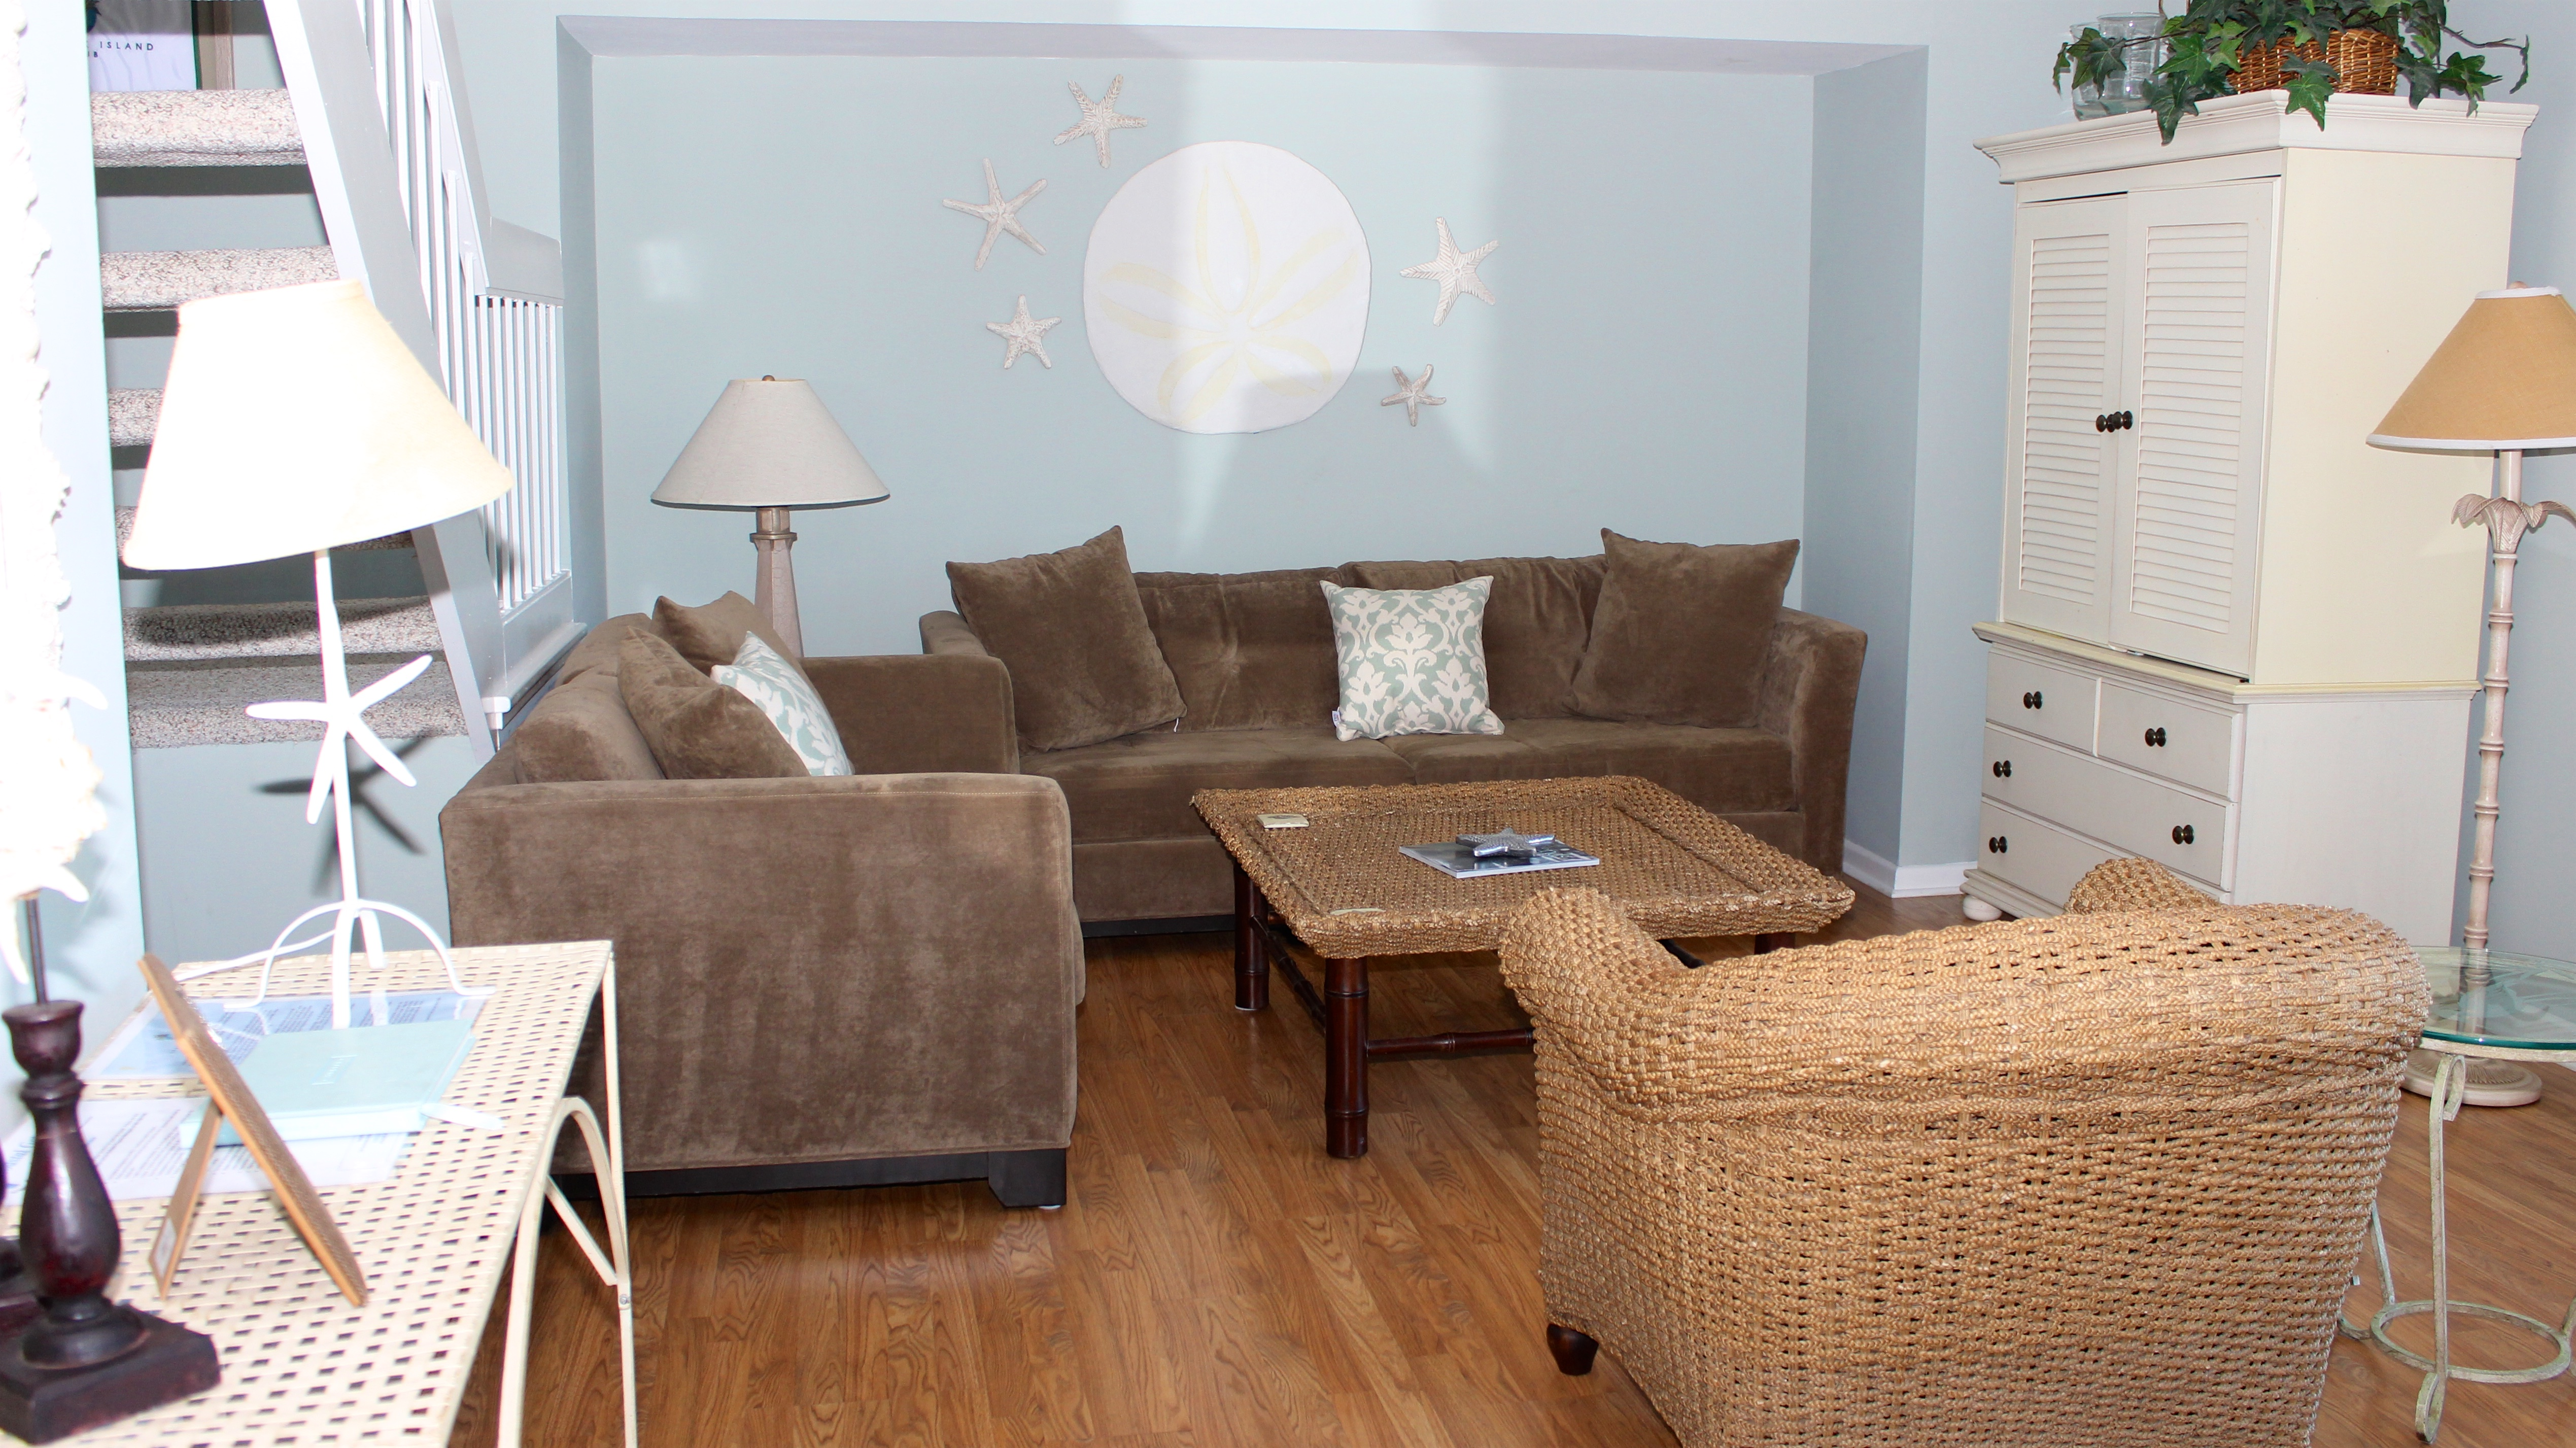 Soft blues/tans and hardwood floors greet you when you enter this roomy home.